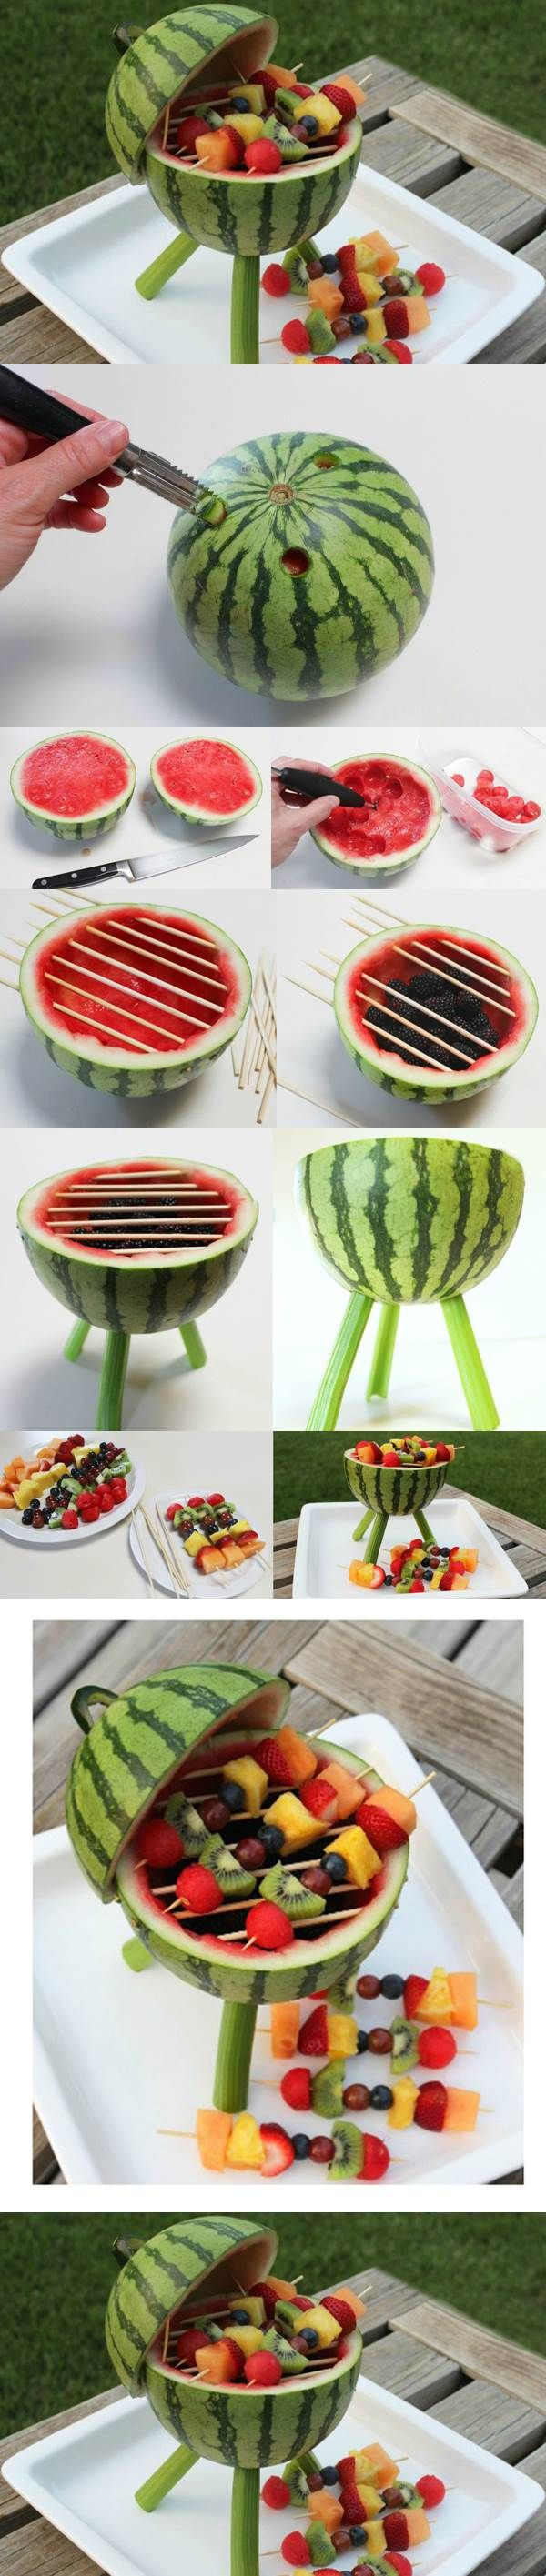 Food Art DIY – Watermelon Barbecue Grill